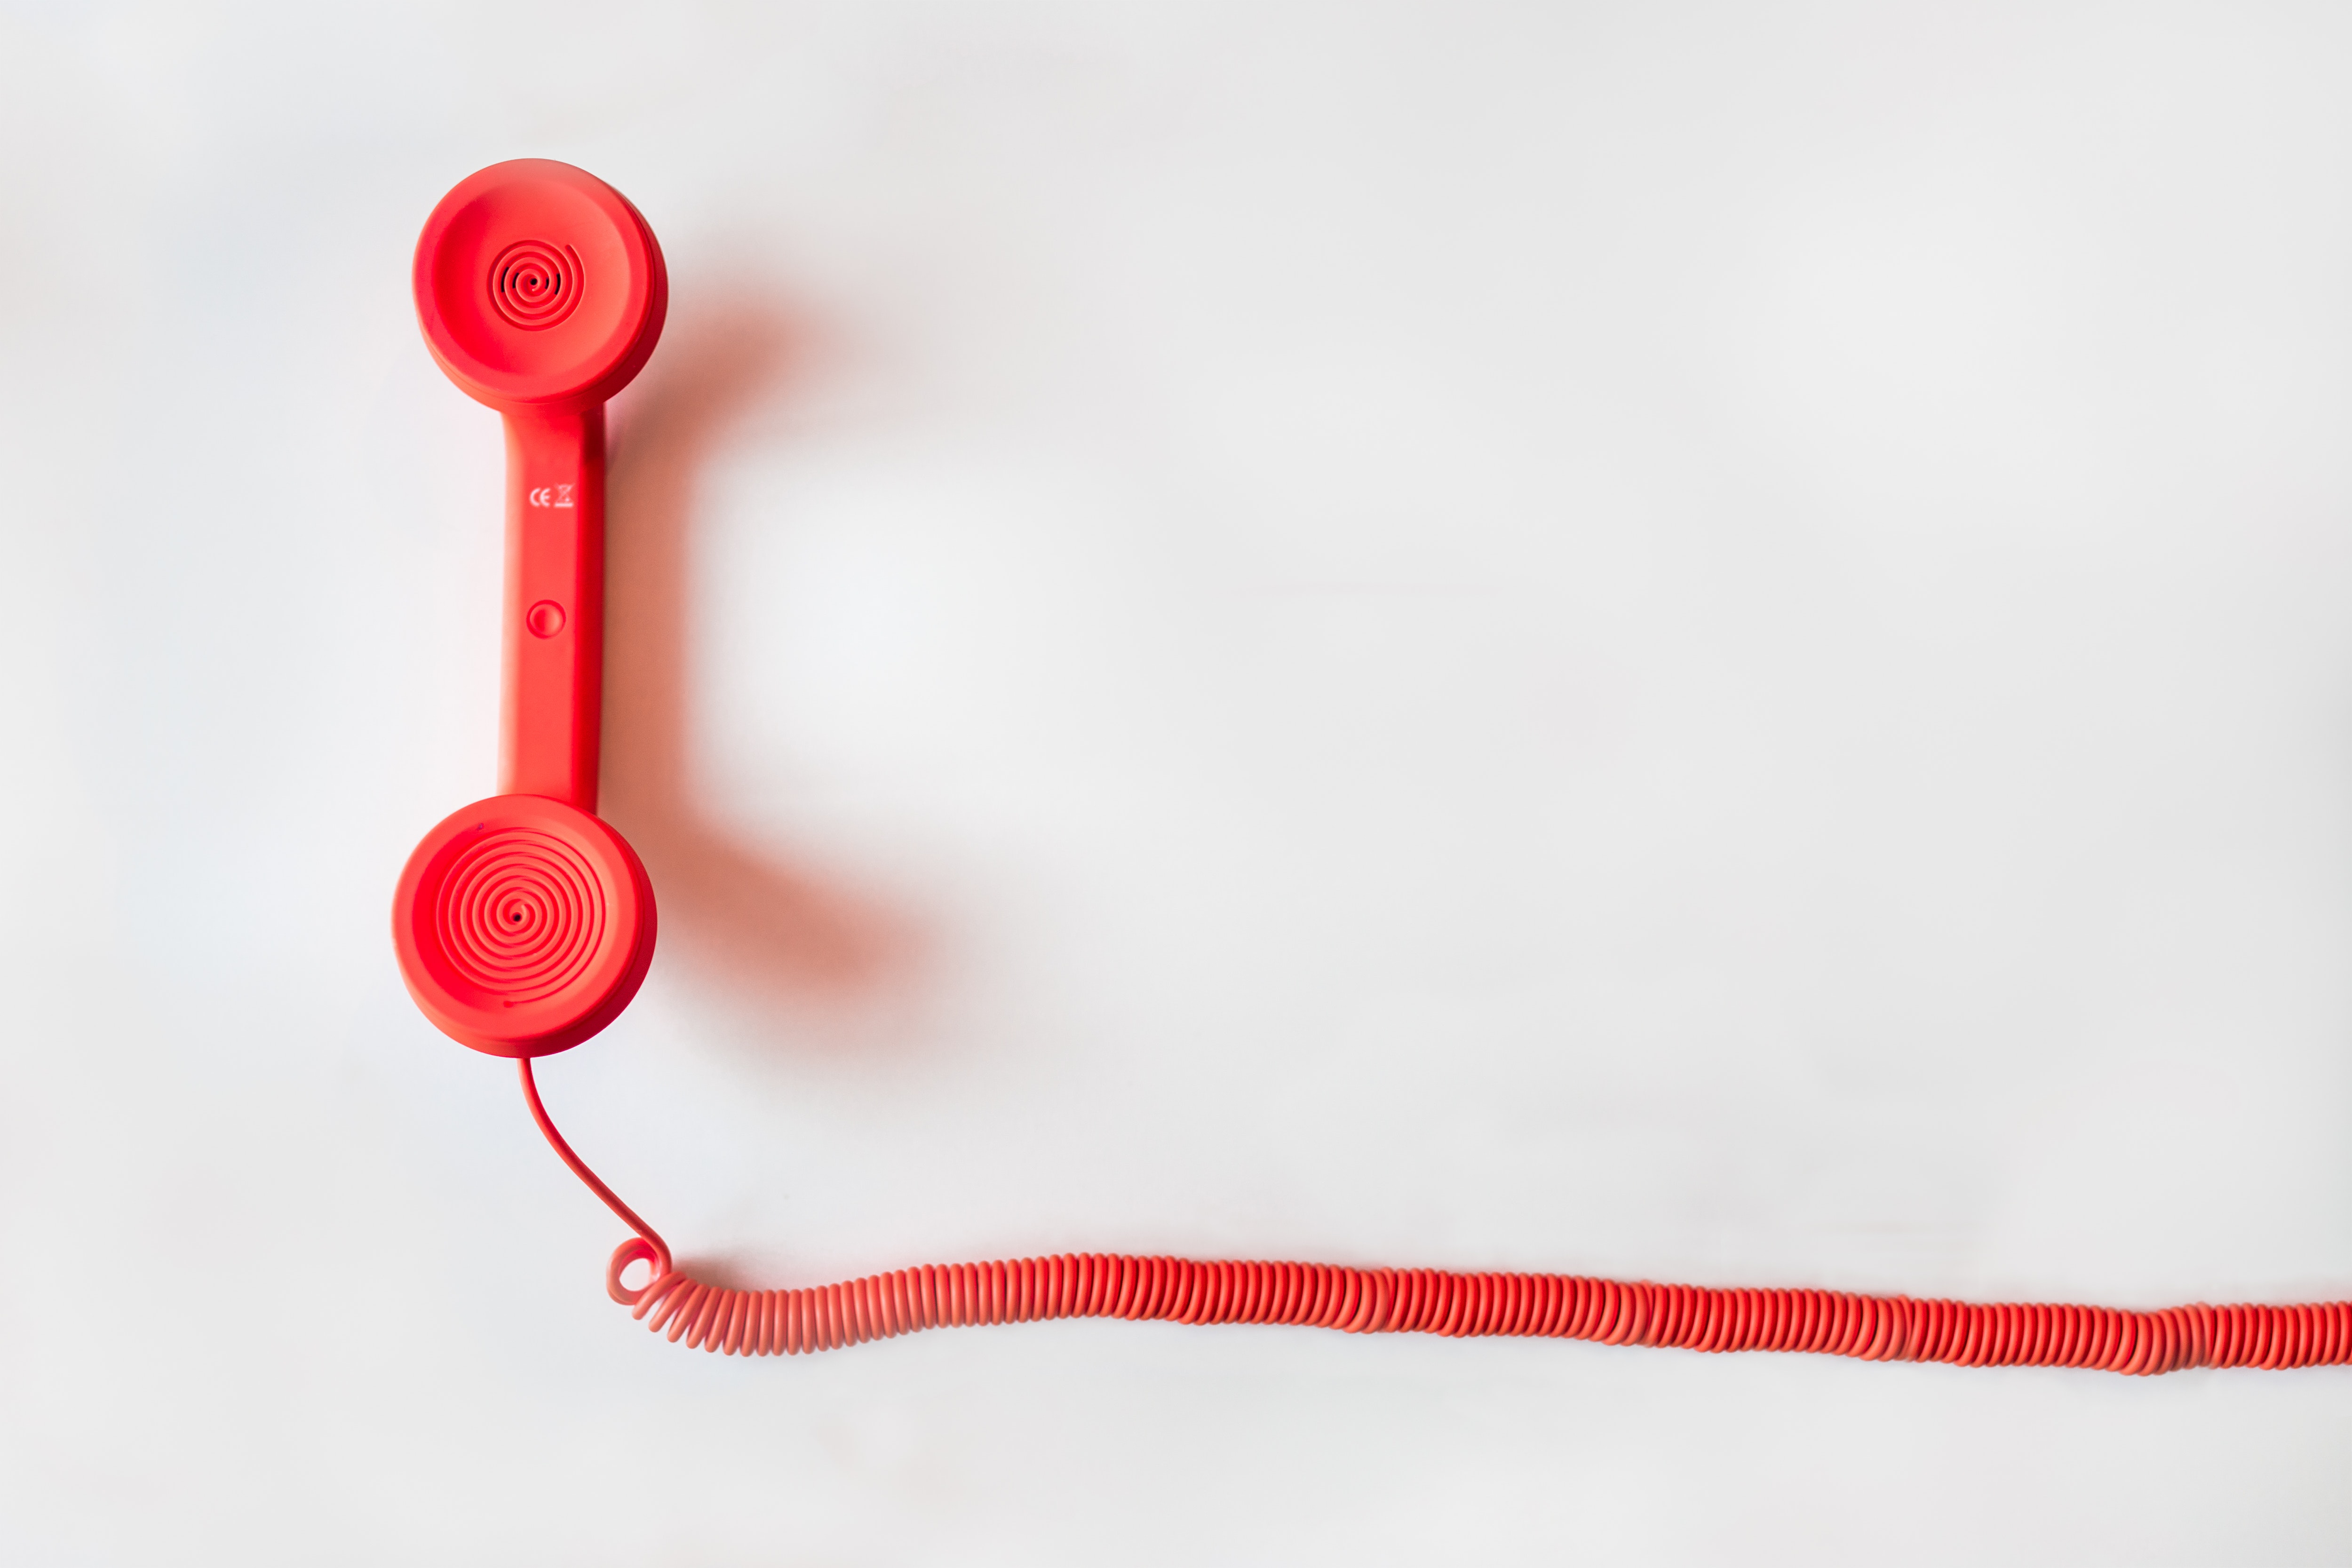 A red corded telephone handset